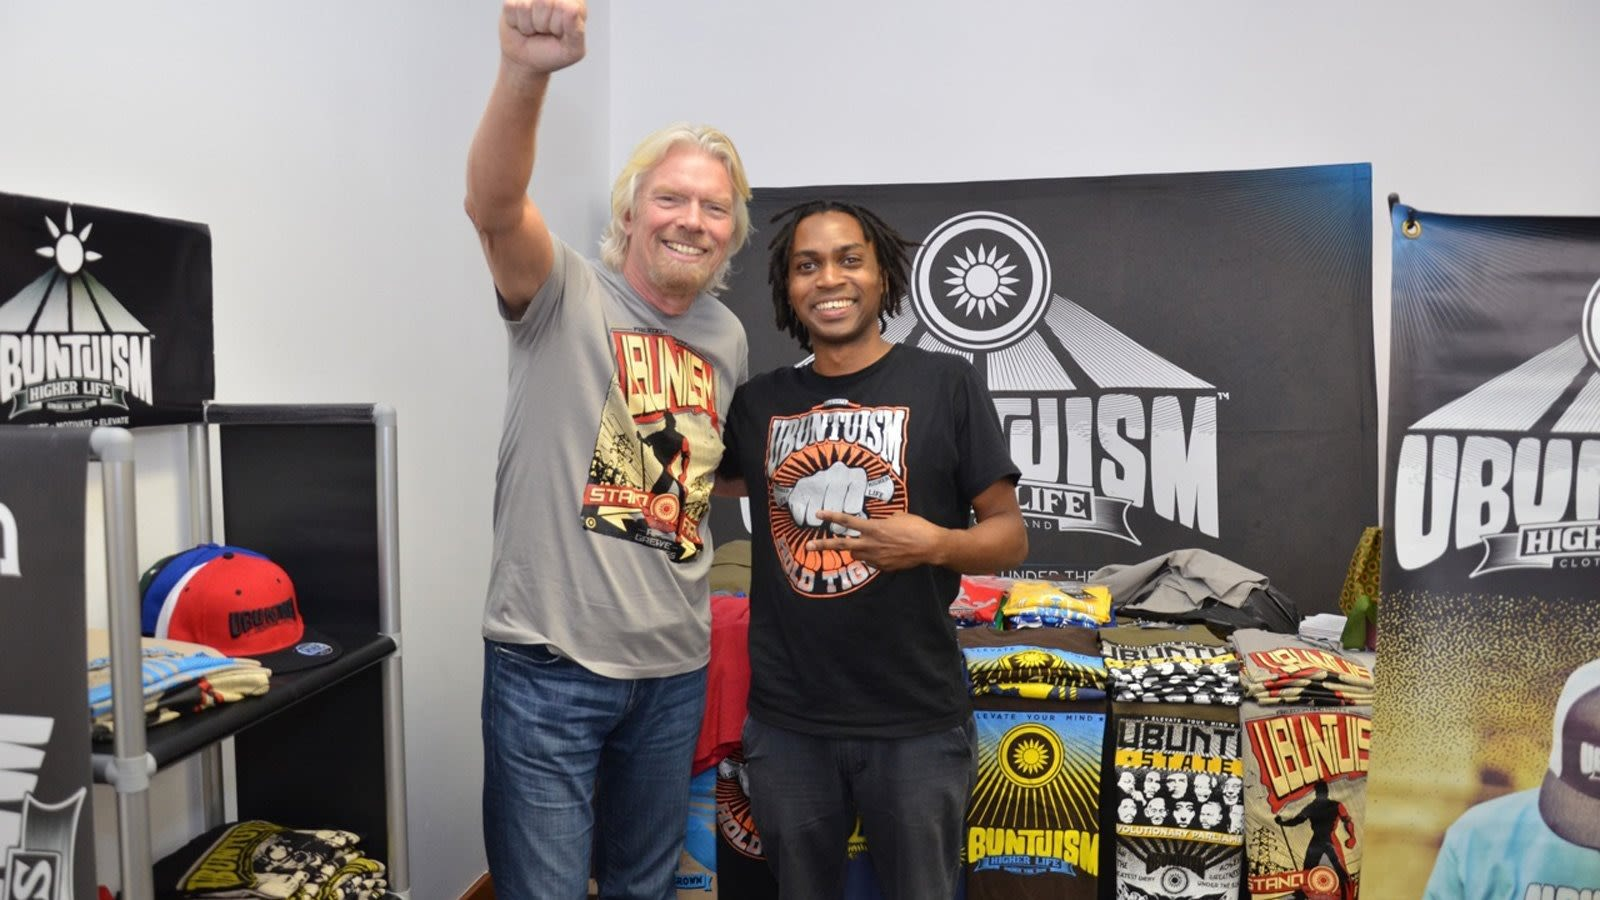 Richard Branson and man with Unbuntuism slogan shirt with surrounding merchandise